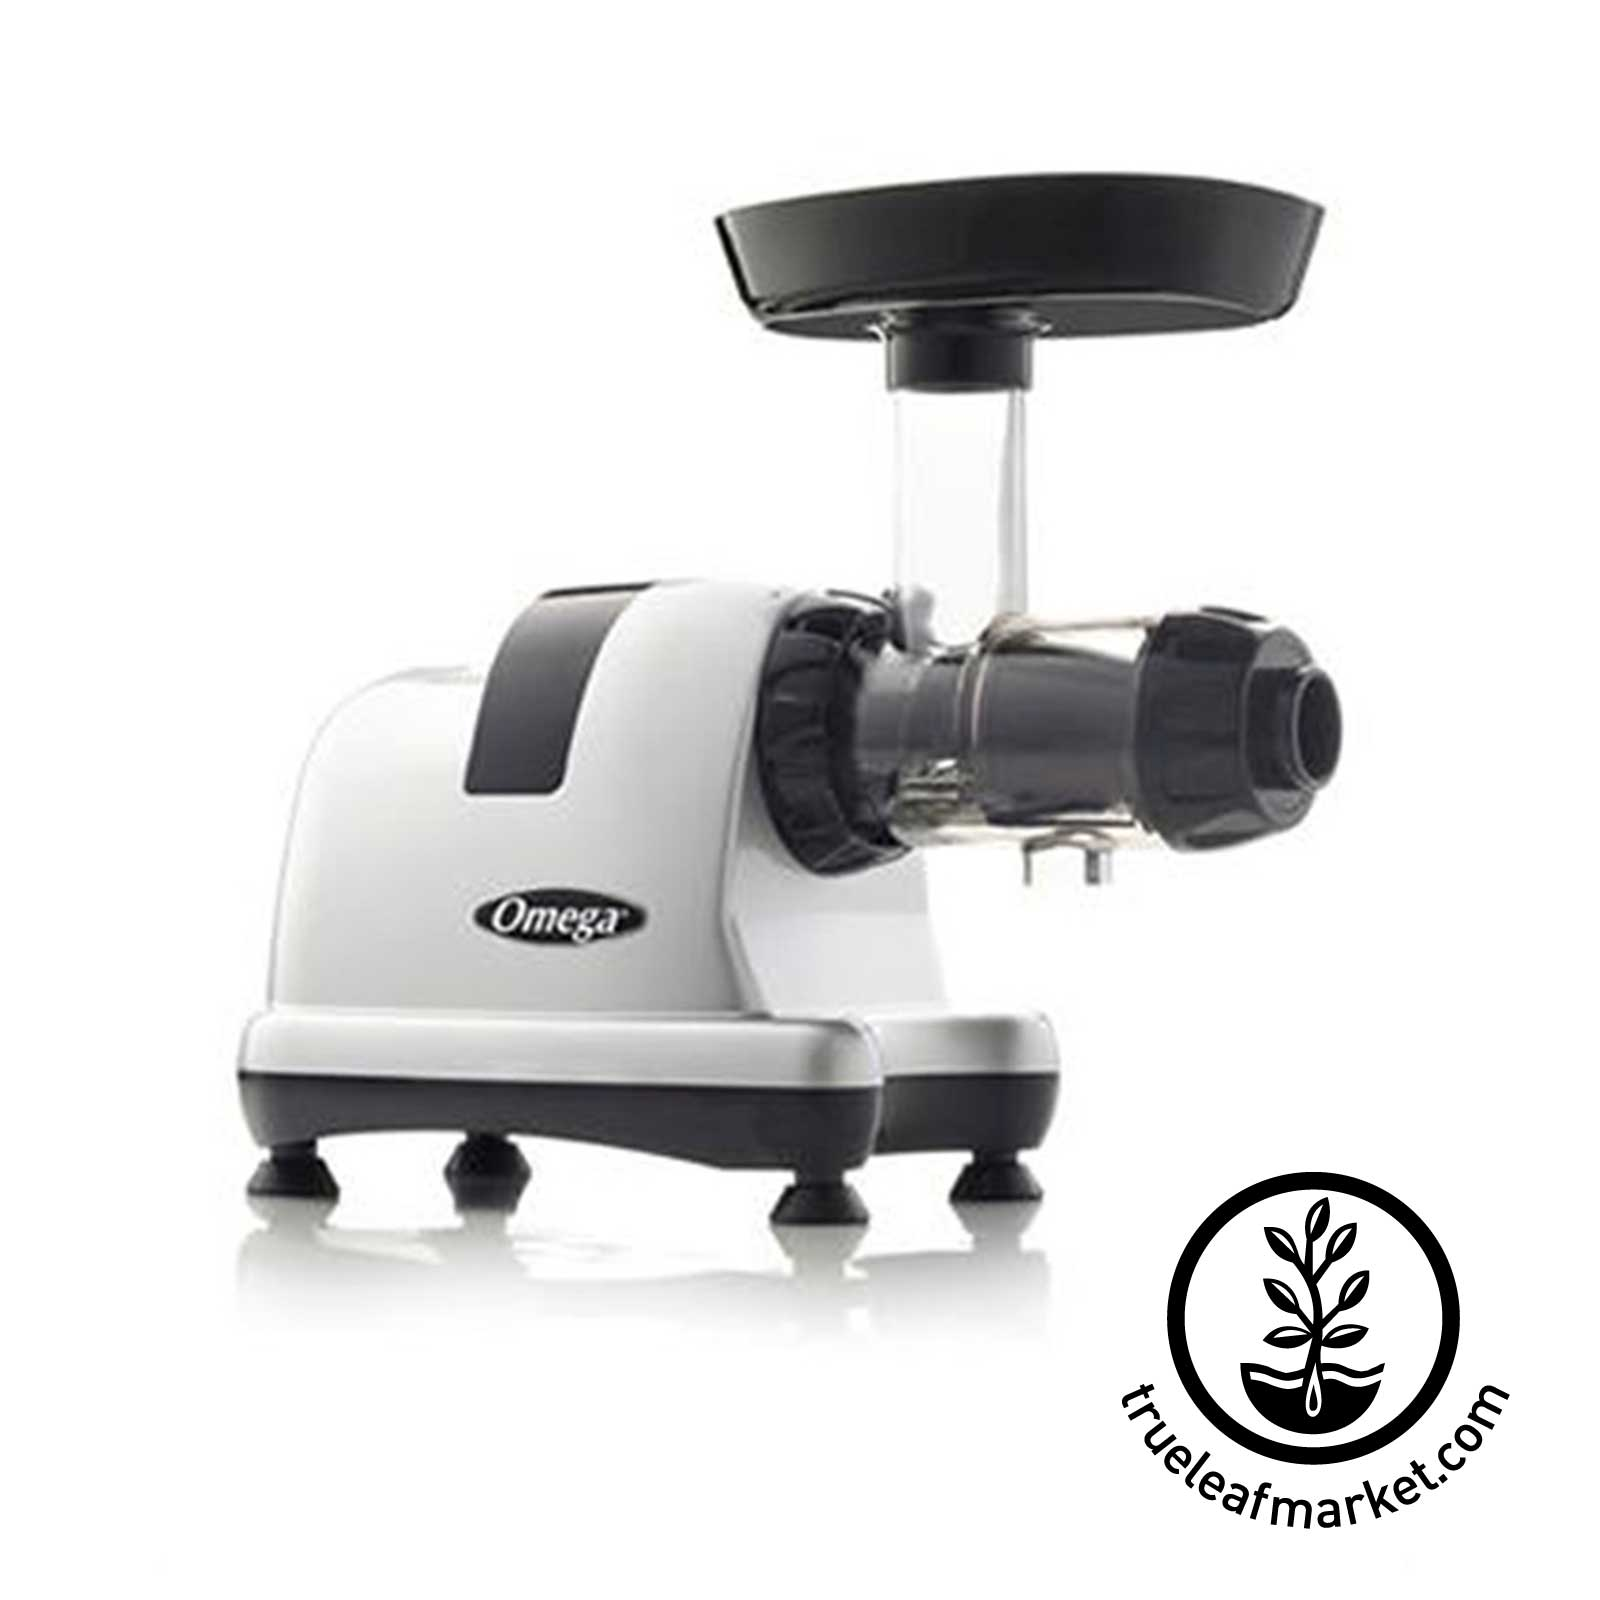 Omega Juicers: Wheatgrass Juicer Omega Model 8007/8008 Omega 8007,Omega 8008, juicer, free shipping, 8007s, 8008c